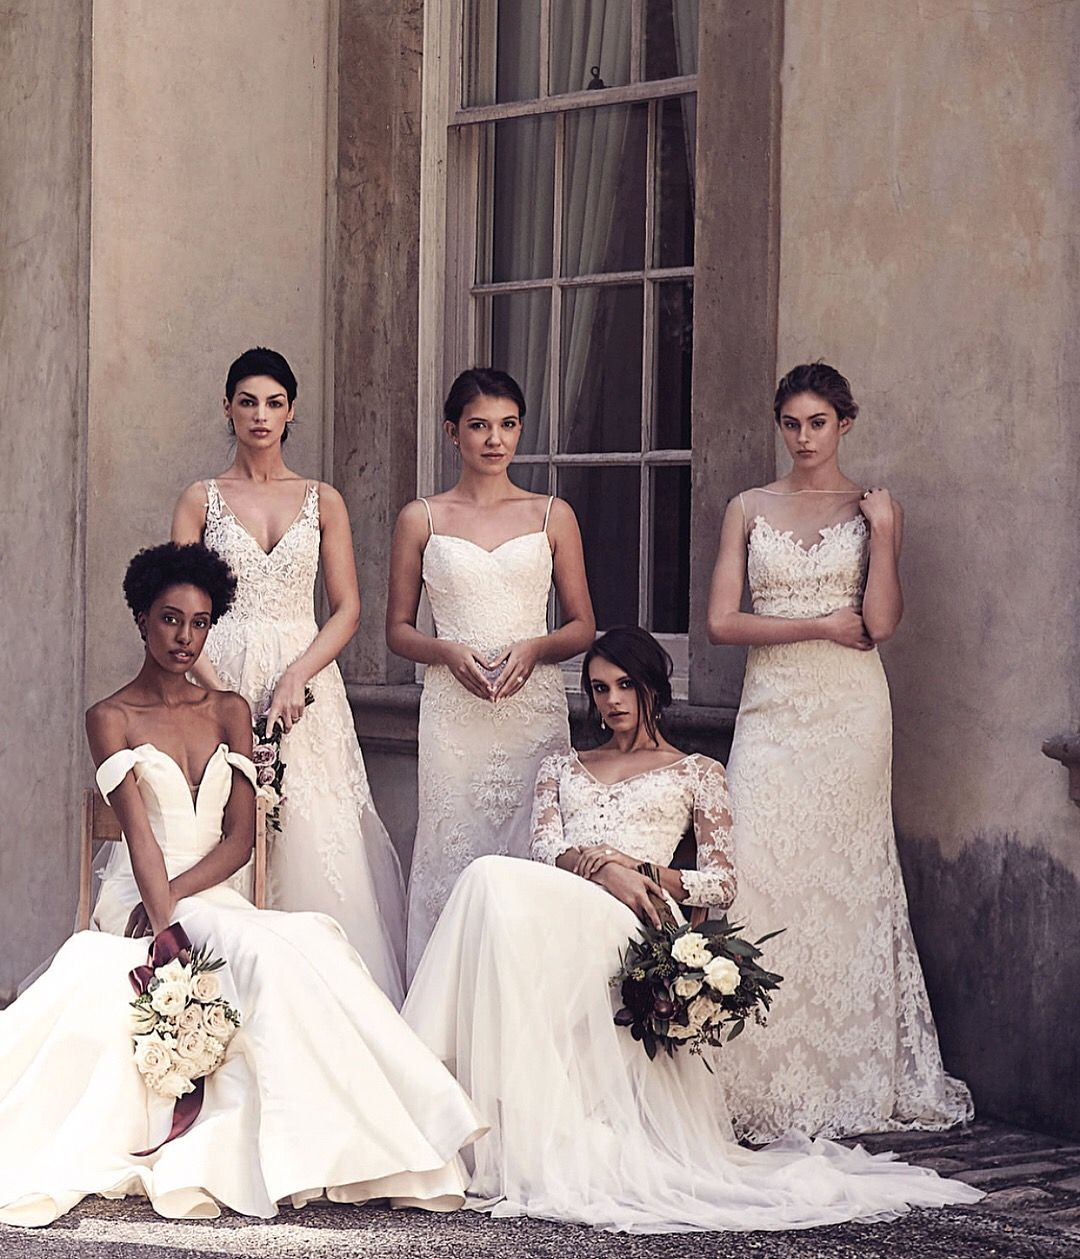 Ten Wedding Dresses By Anne Barge For The Foldout Cover Page Celebrating The 10th Anniversary Of Modern Luxury Wed Wedding Dresses Bridal Style Atlanta Wedding